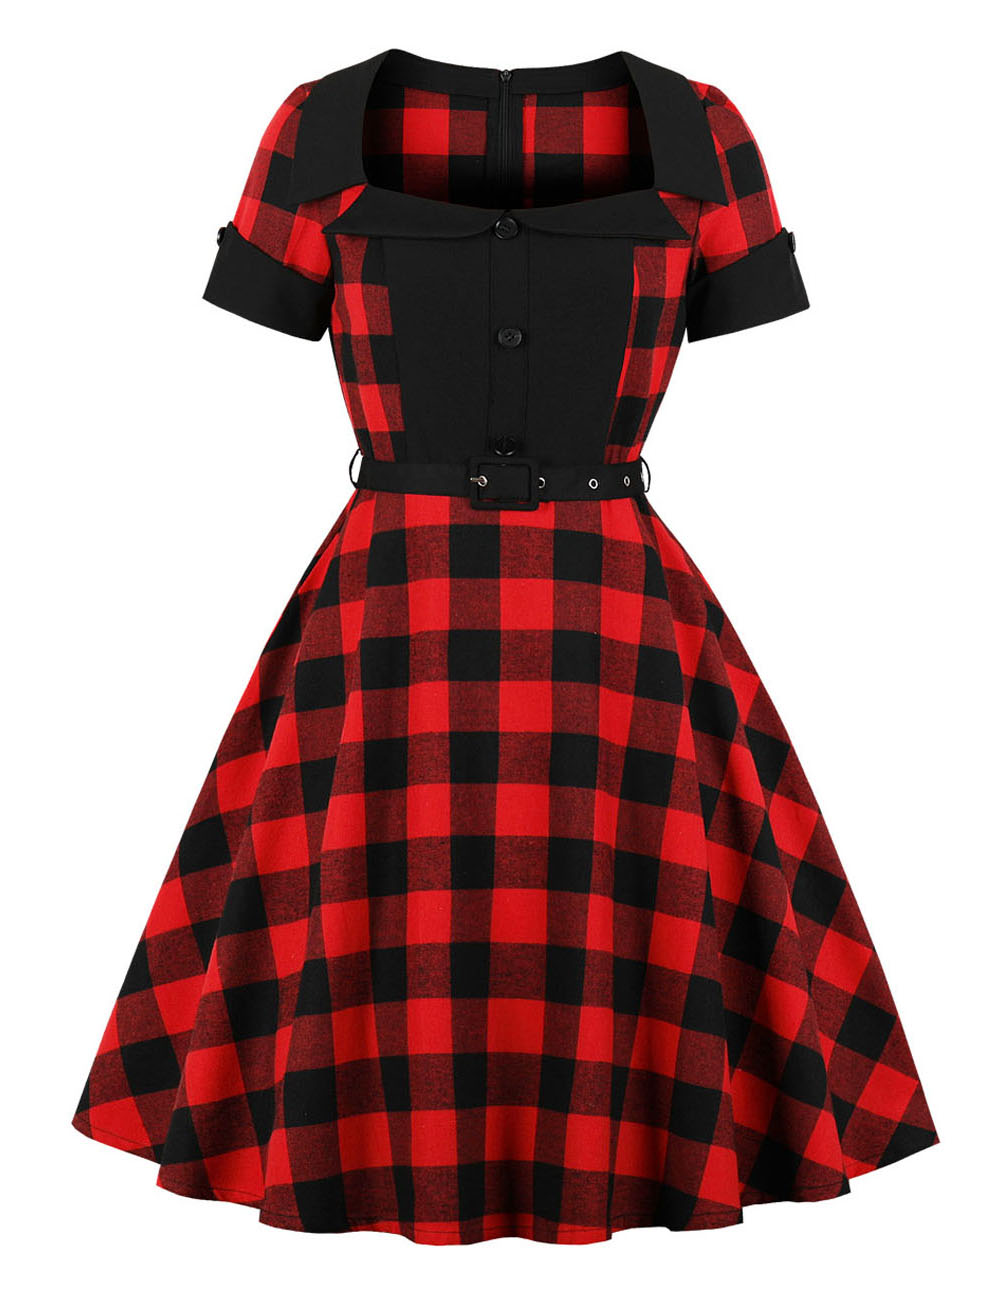 //cdn.affectcloud.com/feelingirldress/upload/goods/2018-11-05/I180270-RD1/I180270-RD1.jpg